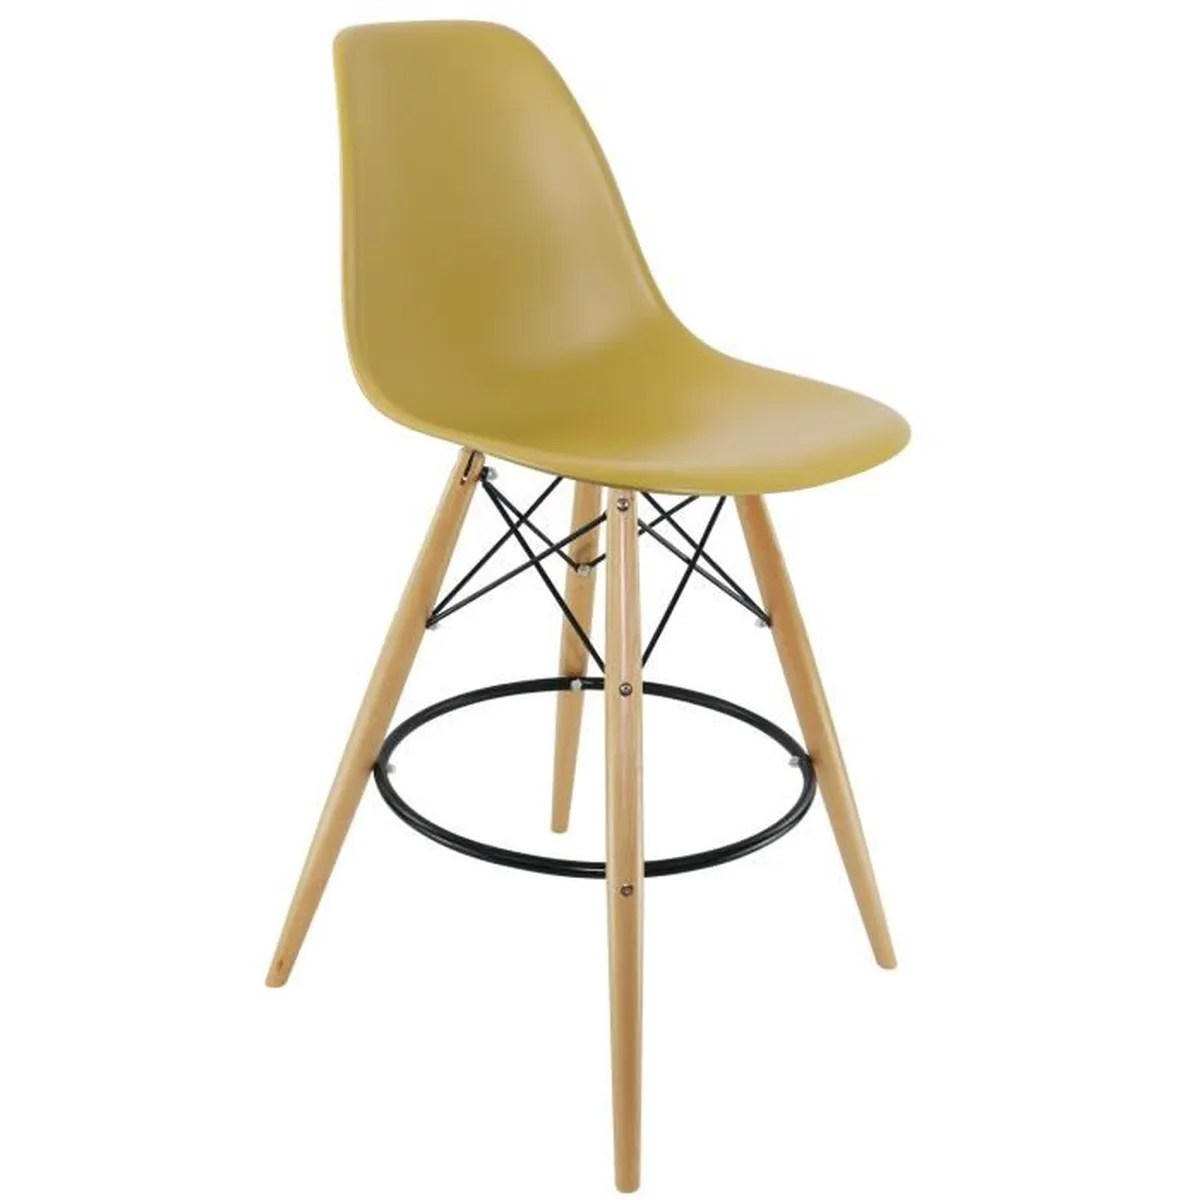 Tabourets Moutarde Chaise Privee Tabouret Dsw Moutarde Naturel Base Ronde